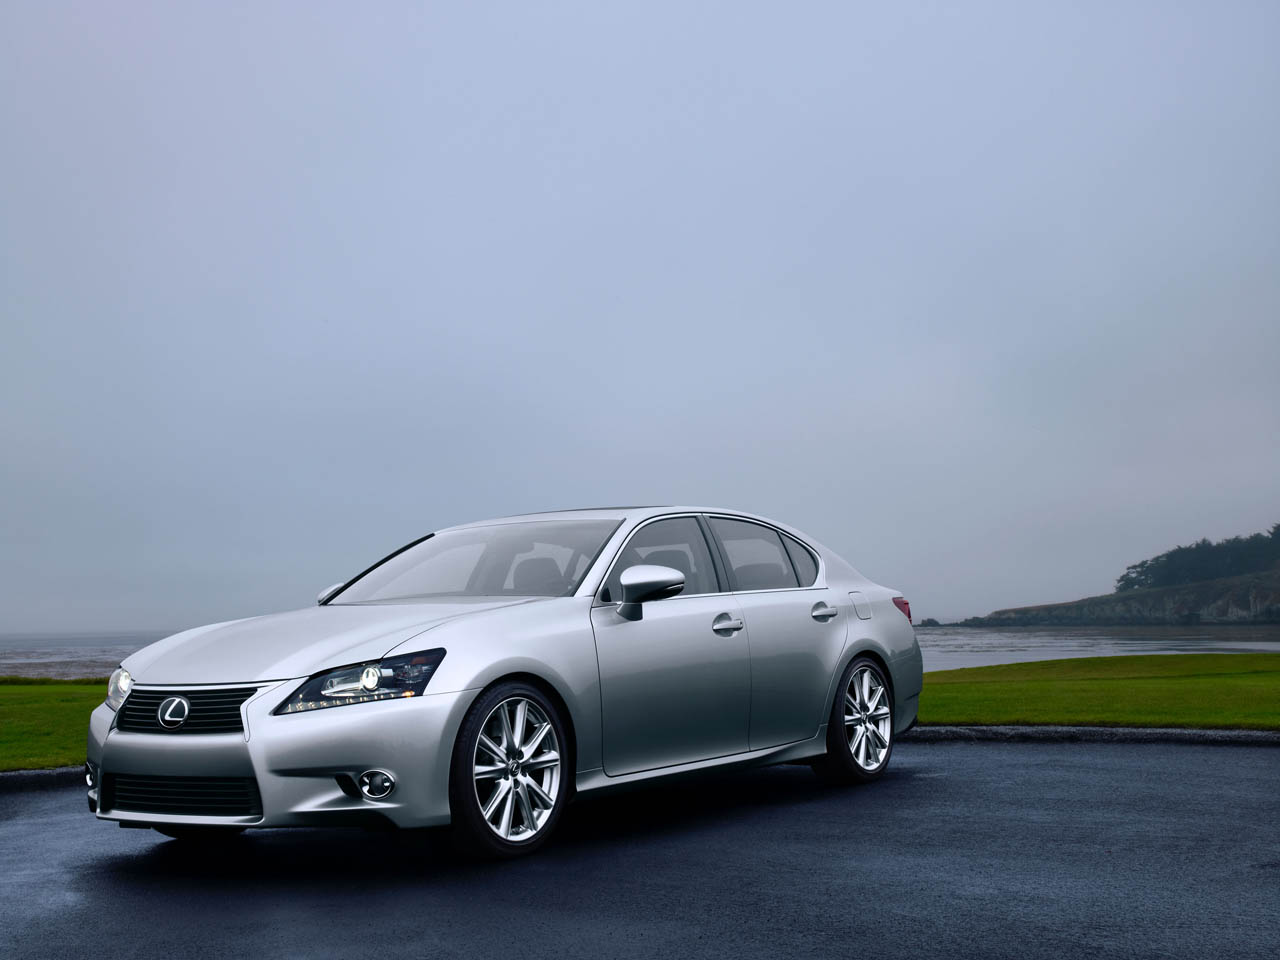 2013 Lexus GS 350 Revealed at Pebble Beach